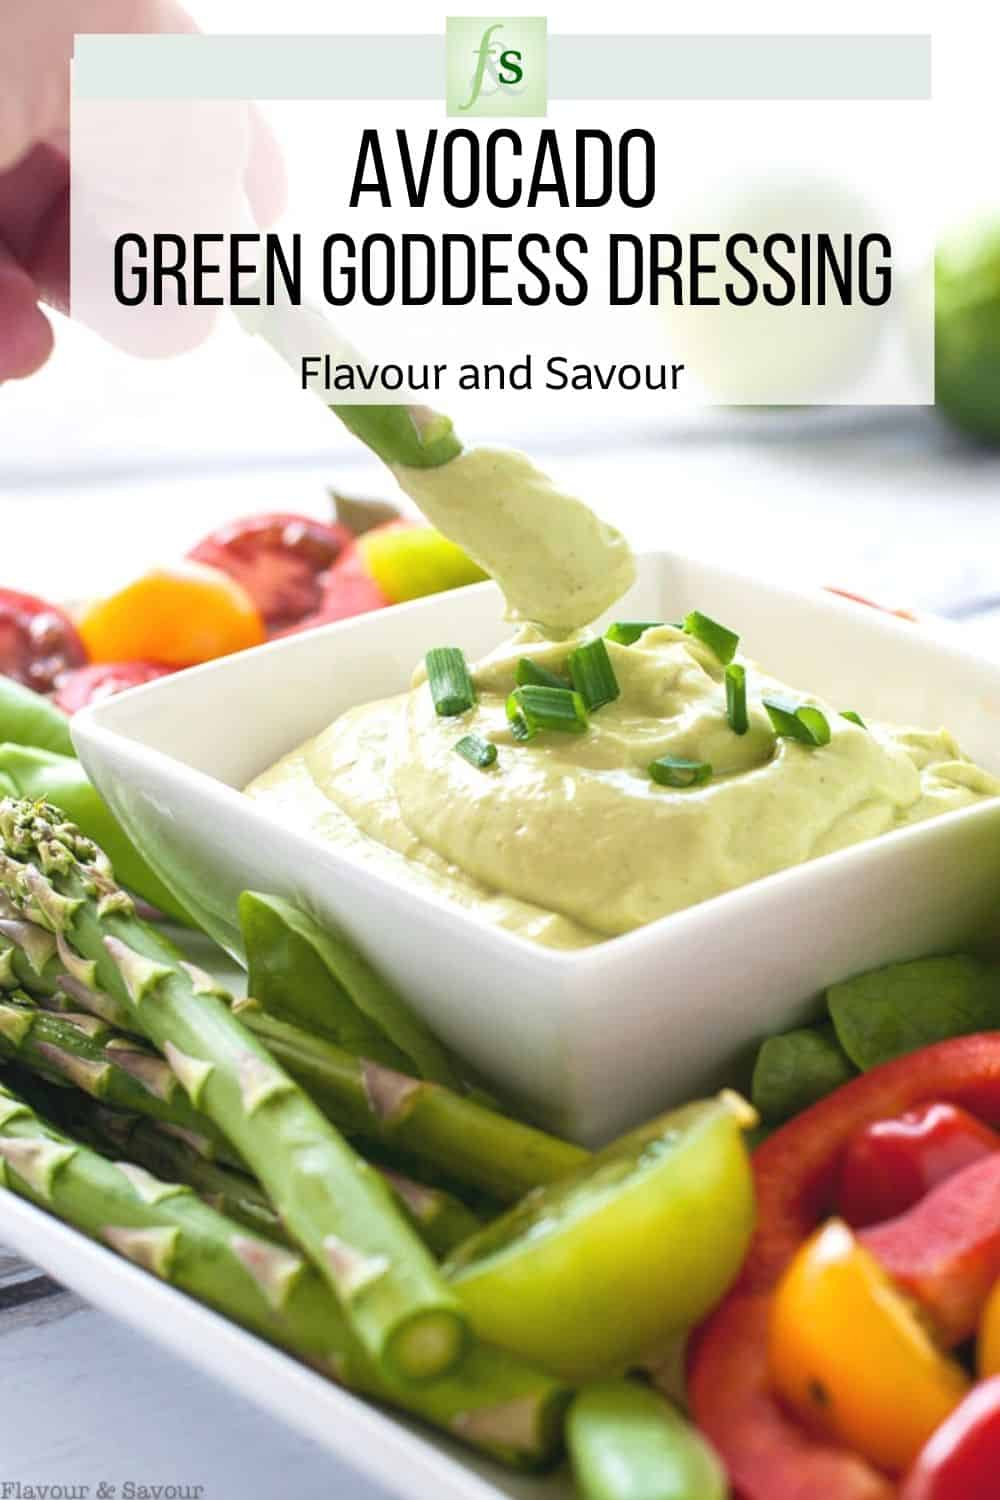 Image and text for Avocado Green Goddess Dressing